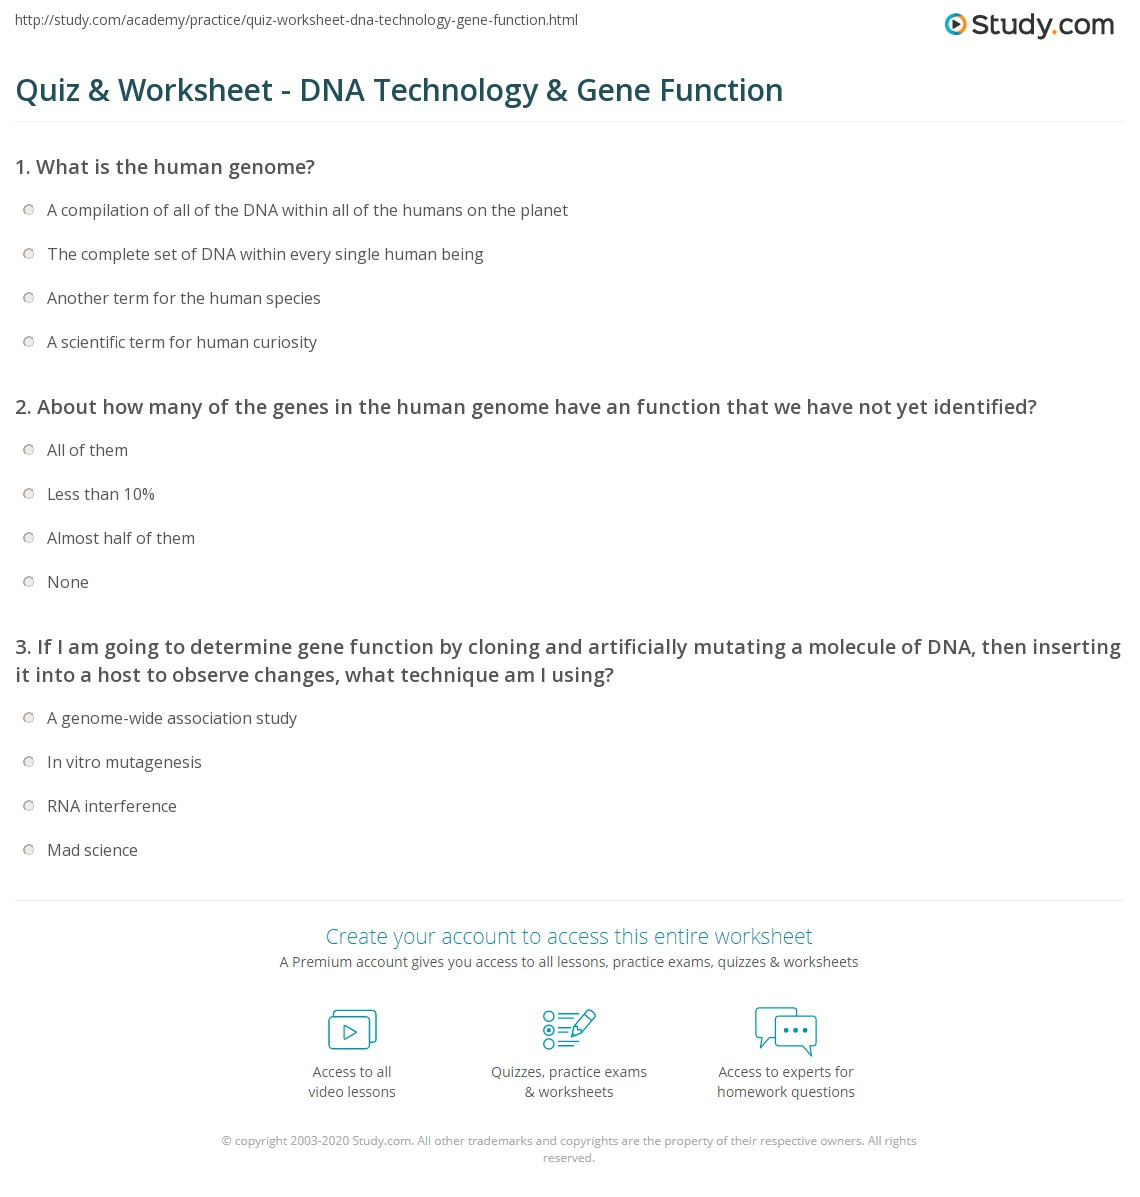 Quiz Worksheet DNA Technology Gene Function – Dna and Genes Worksheet Answers